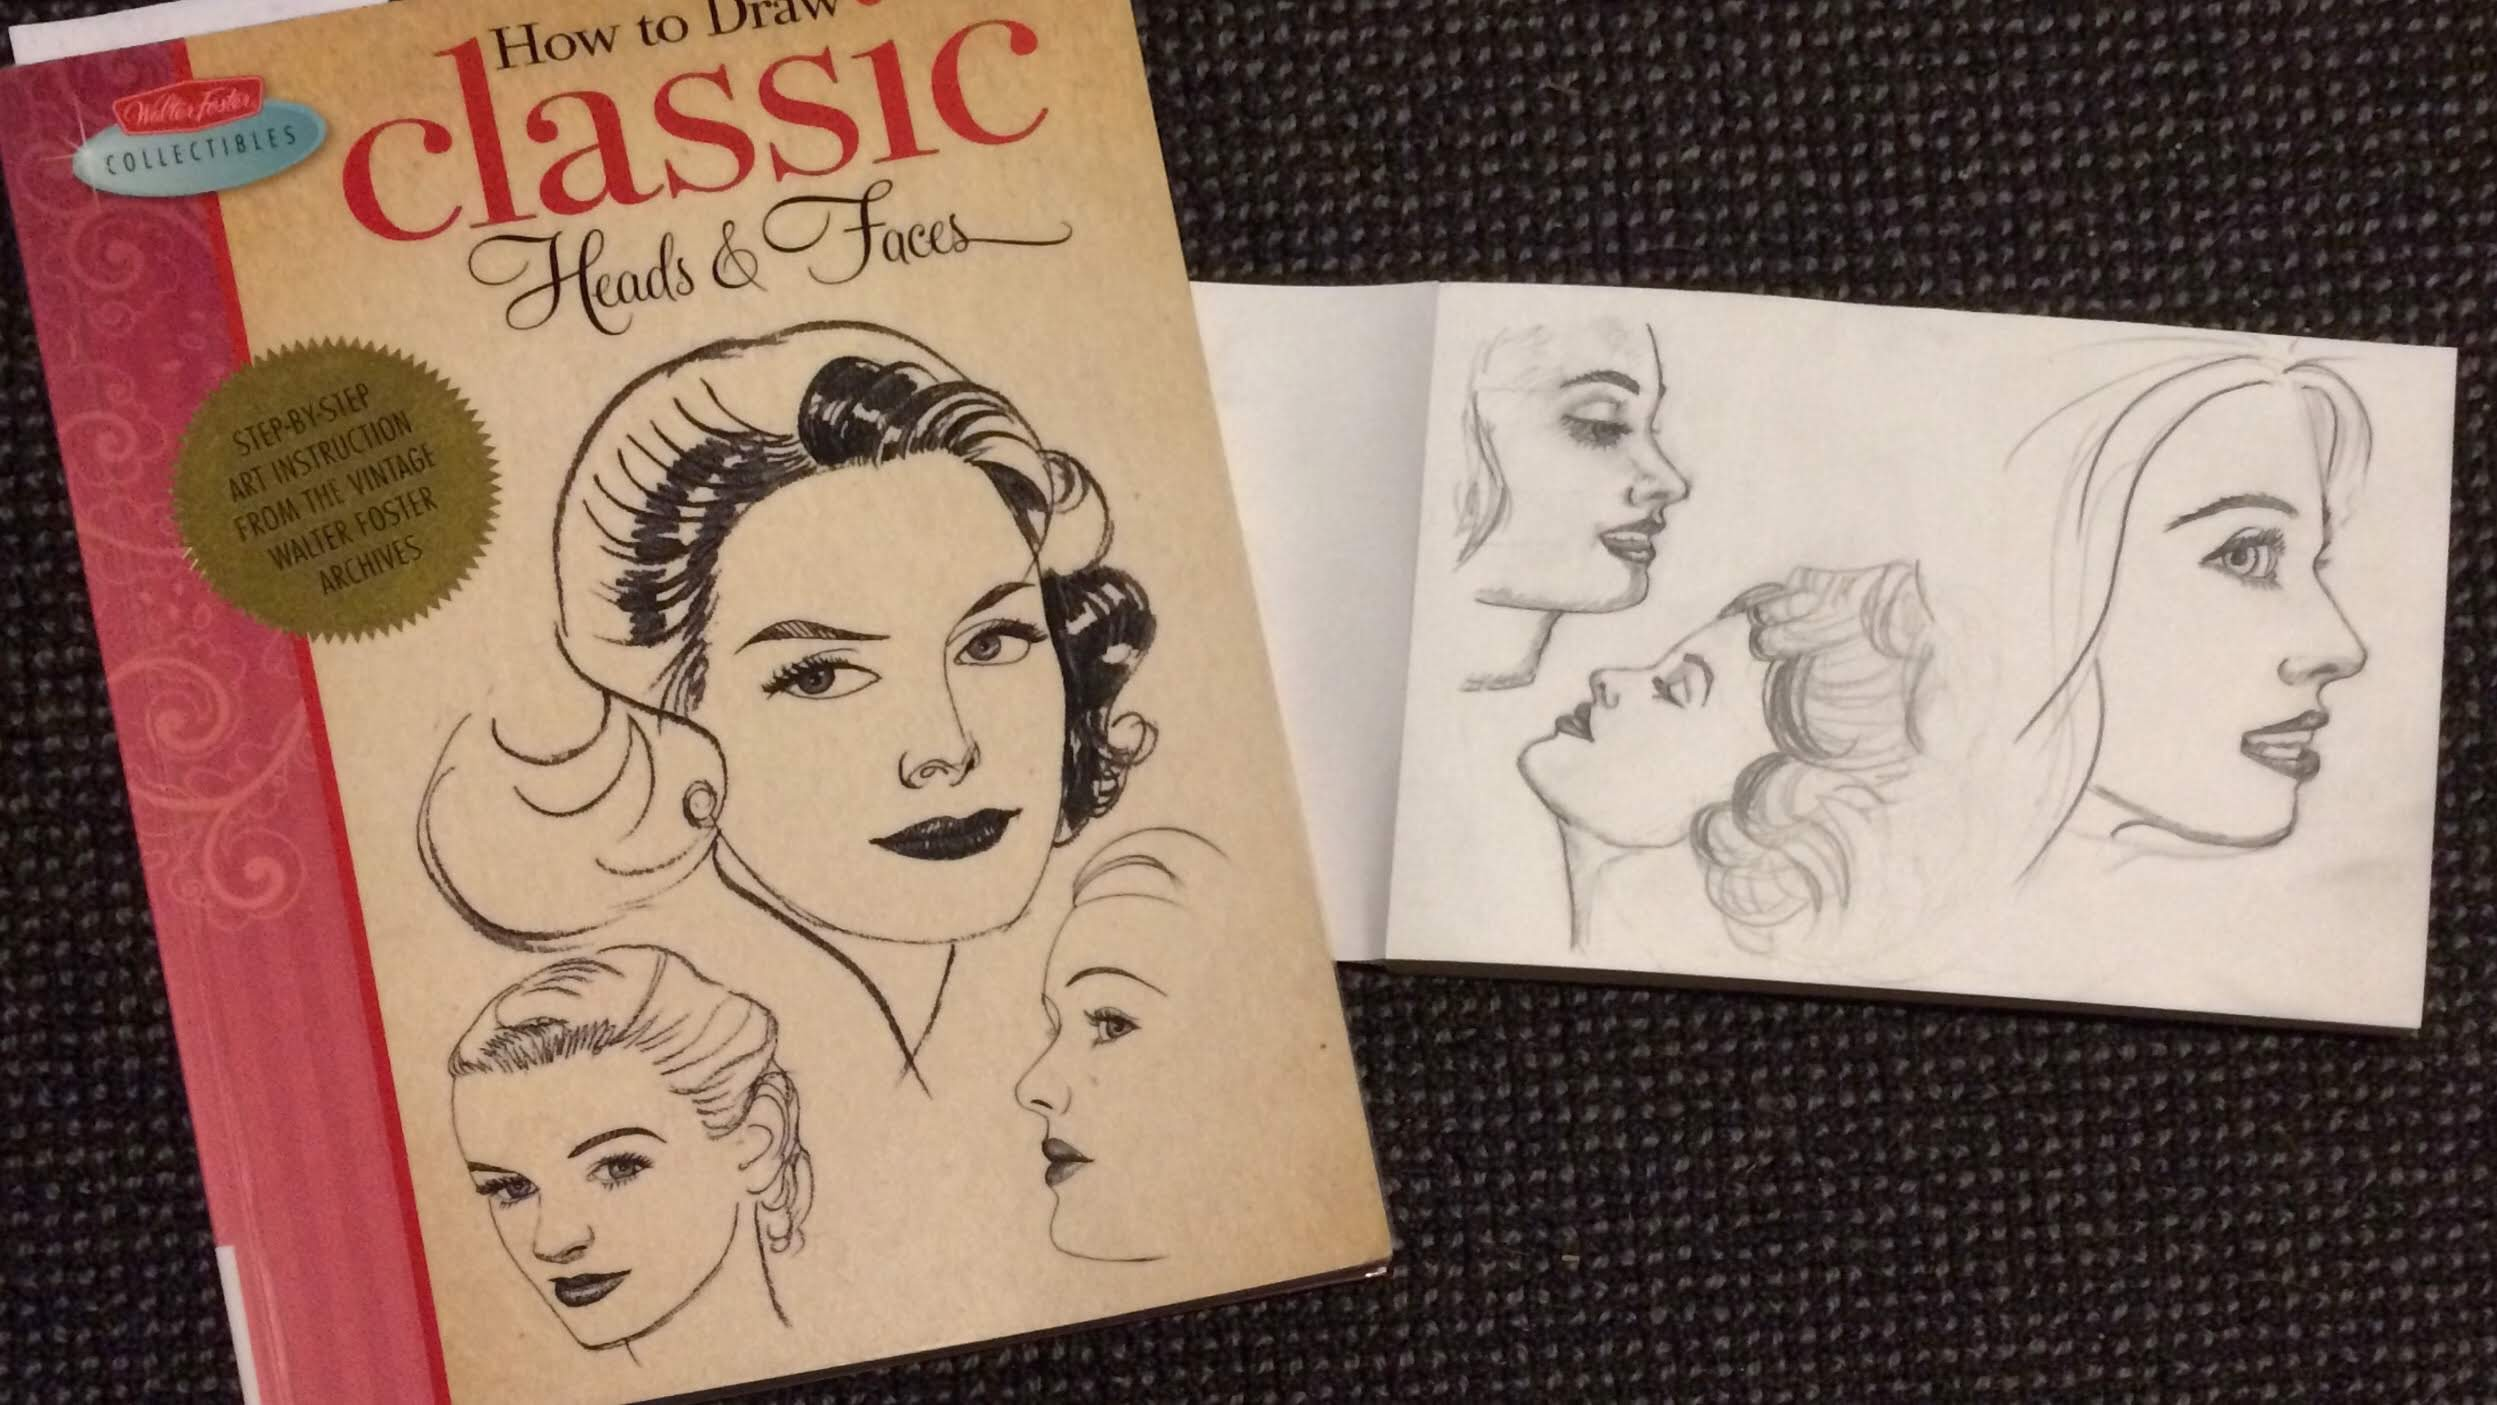 How to Draw Classic Heads and Faces by Walter Foster Collectibles and sketches I did from the book of three women's faces in profile.